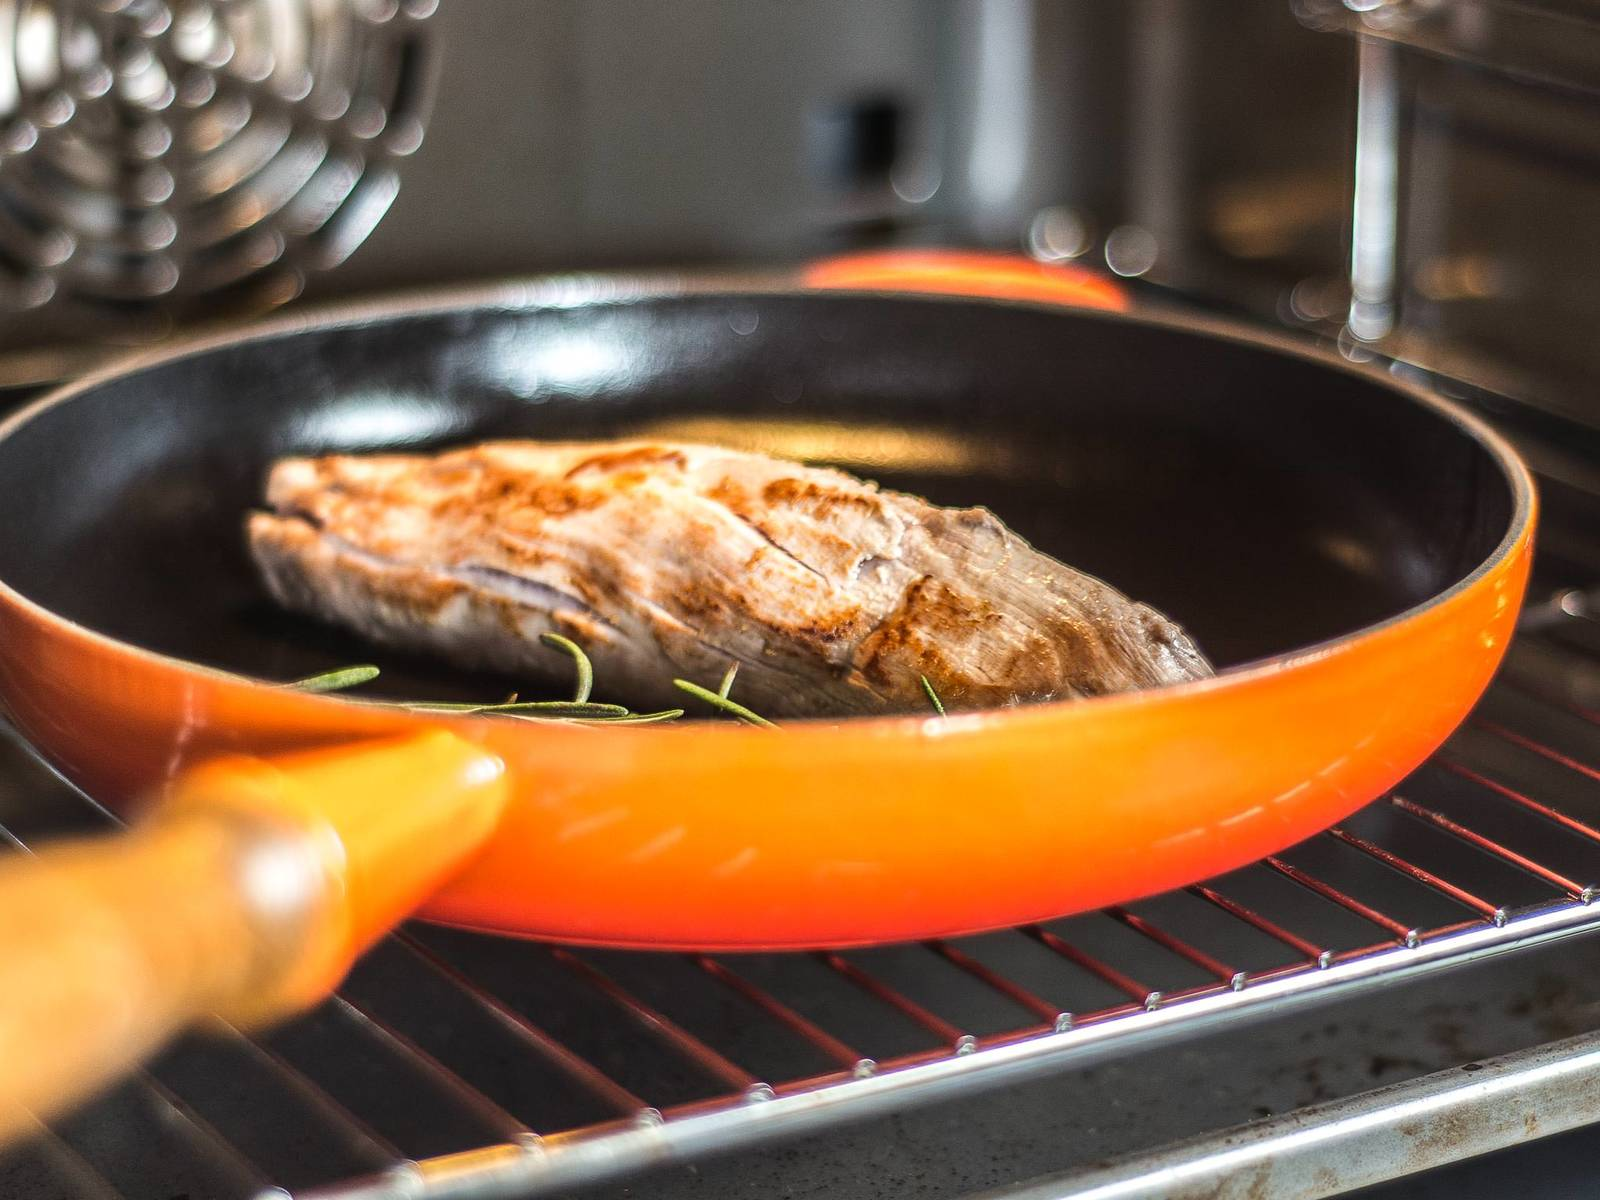 Remove the pork from the oven. Turn the oven down to 60°C/140°F and, once the oven has reached this temperature, put the tenderloin back in for approx. 10 – 15 min.